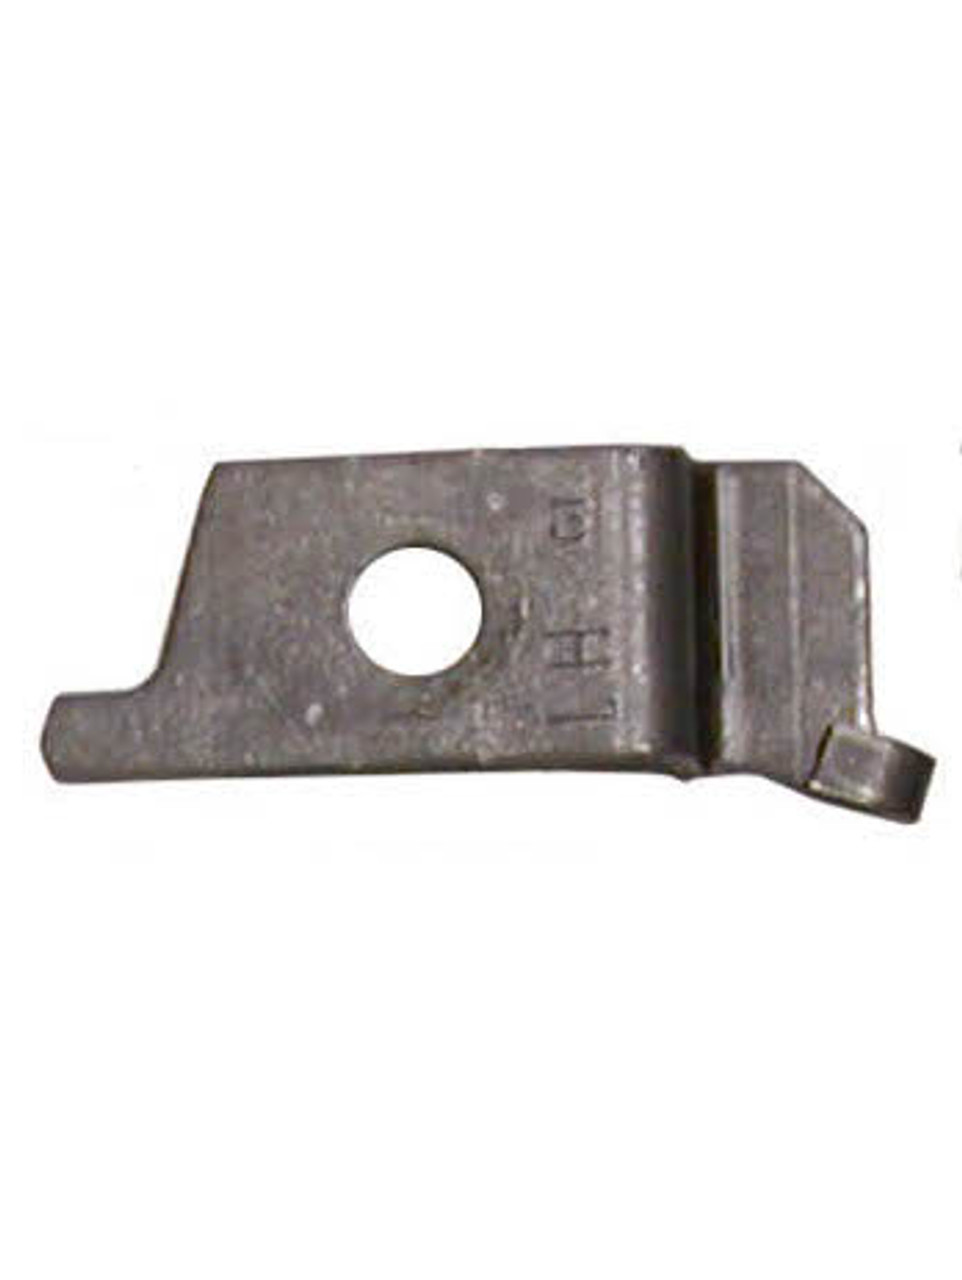 71-455-1 --- Lever Arm Retainer for Dexter Electric Brakes - Left Hand